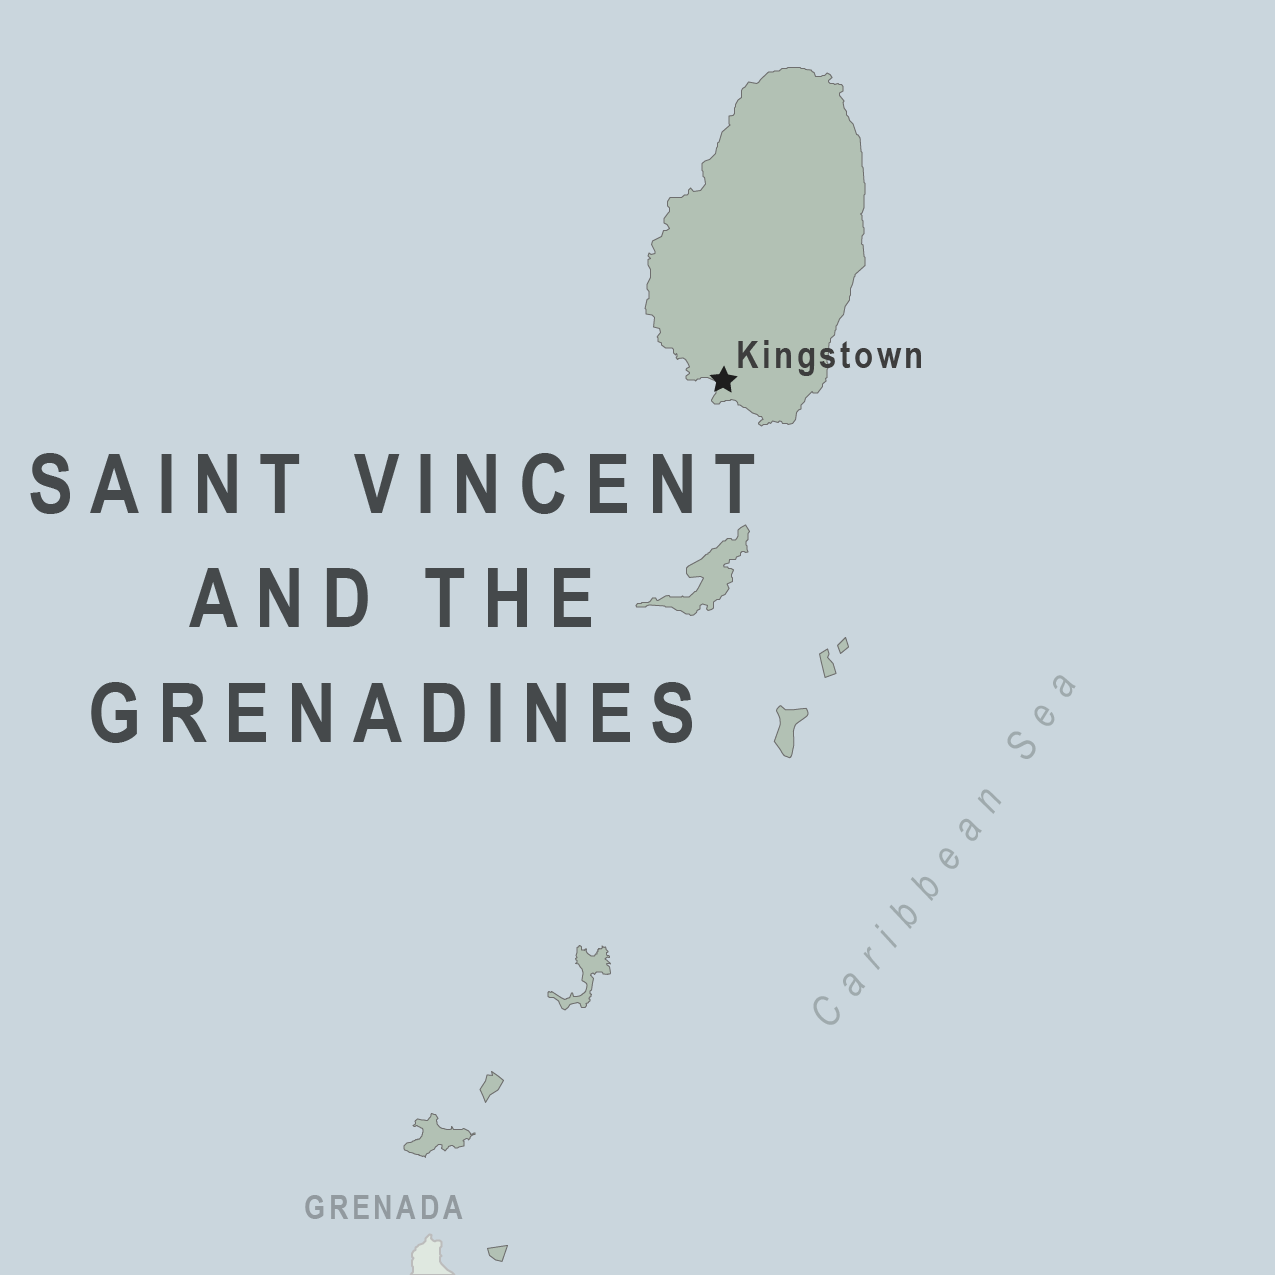 Map - Saint Vincent and the Grenadines